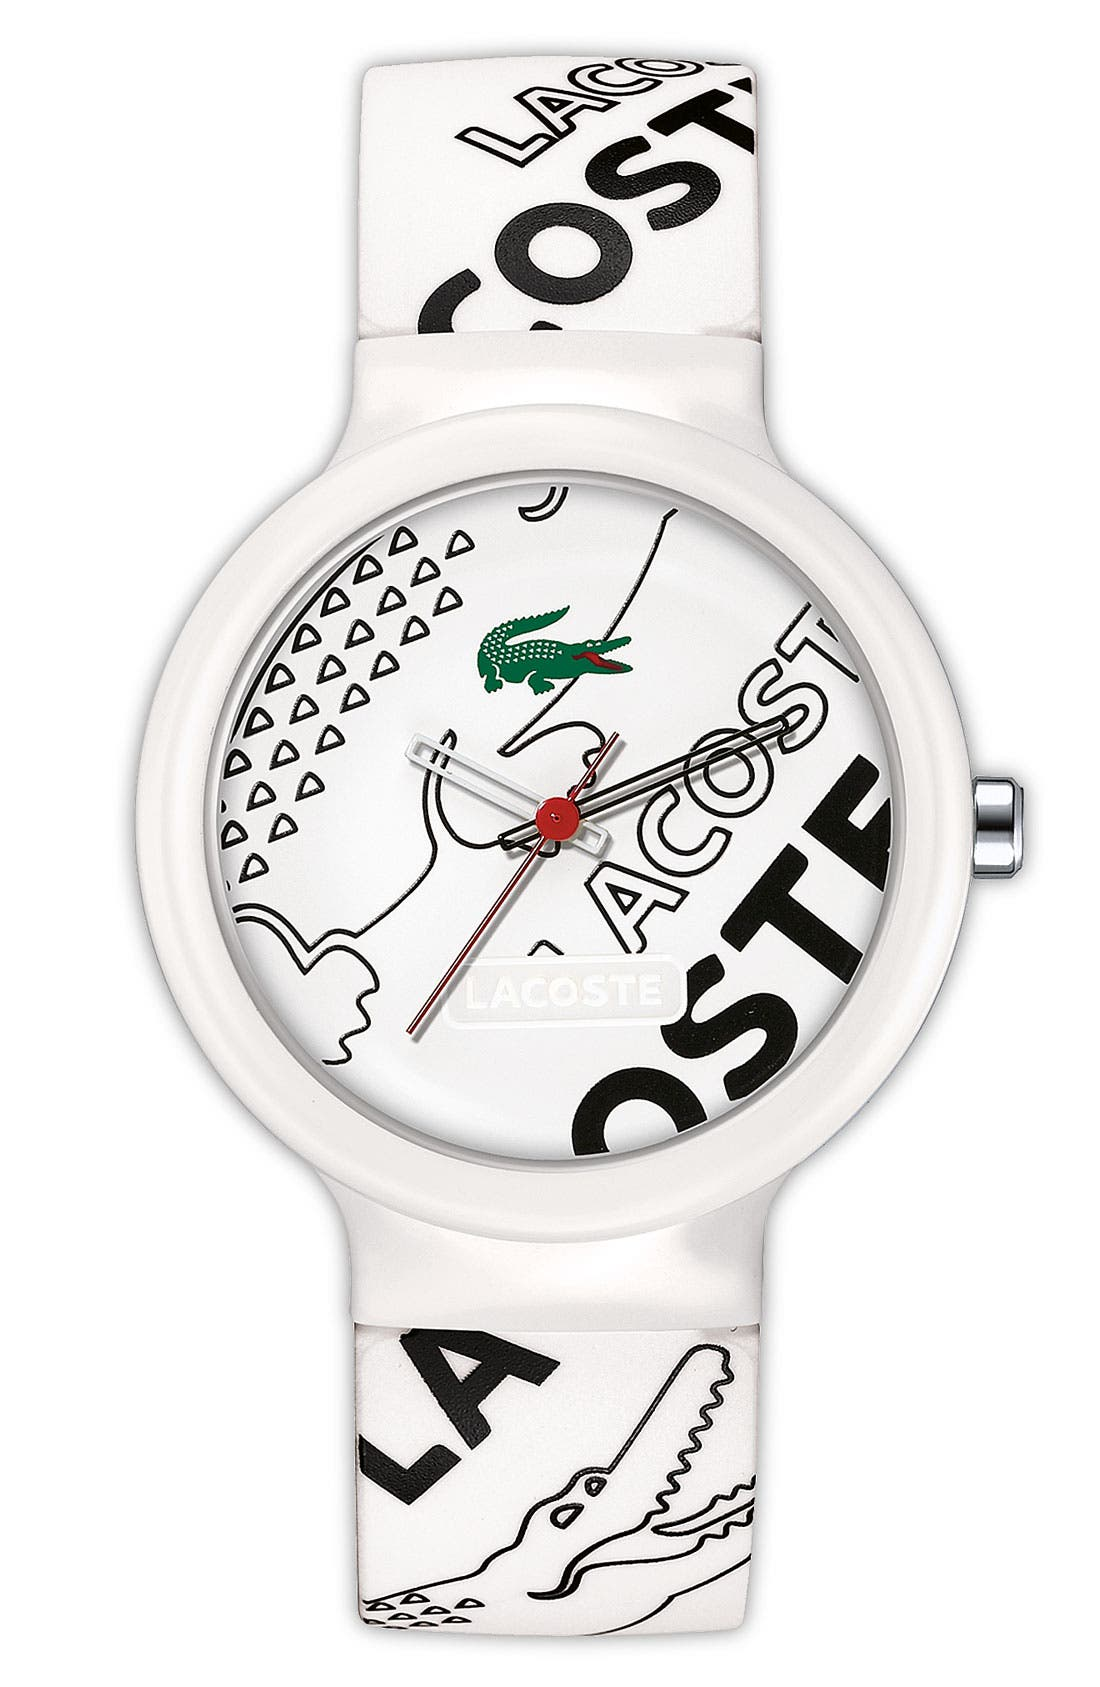 Main Image - Lacoste 'Goa' Logo Strap Watch, 40mm